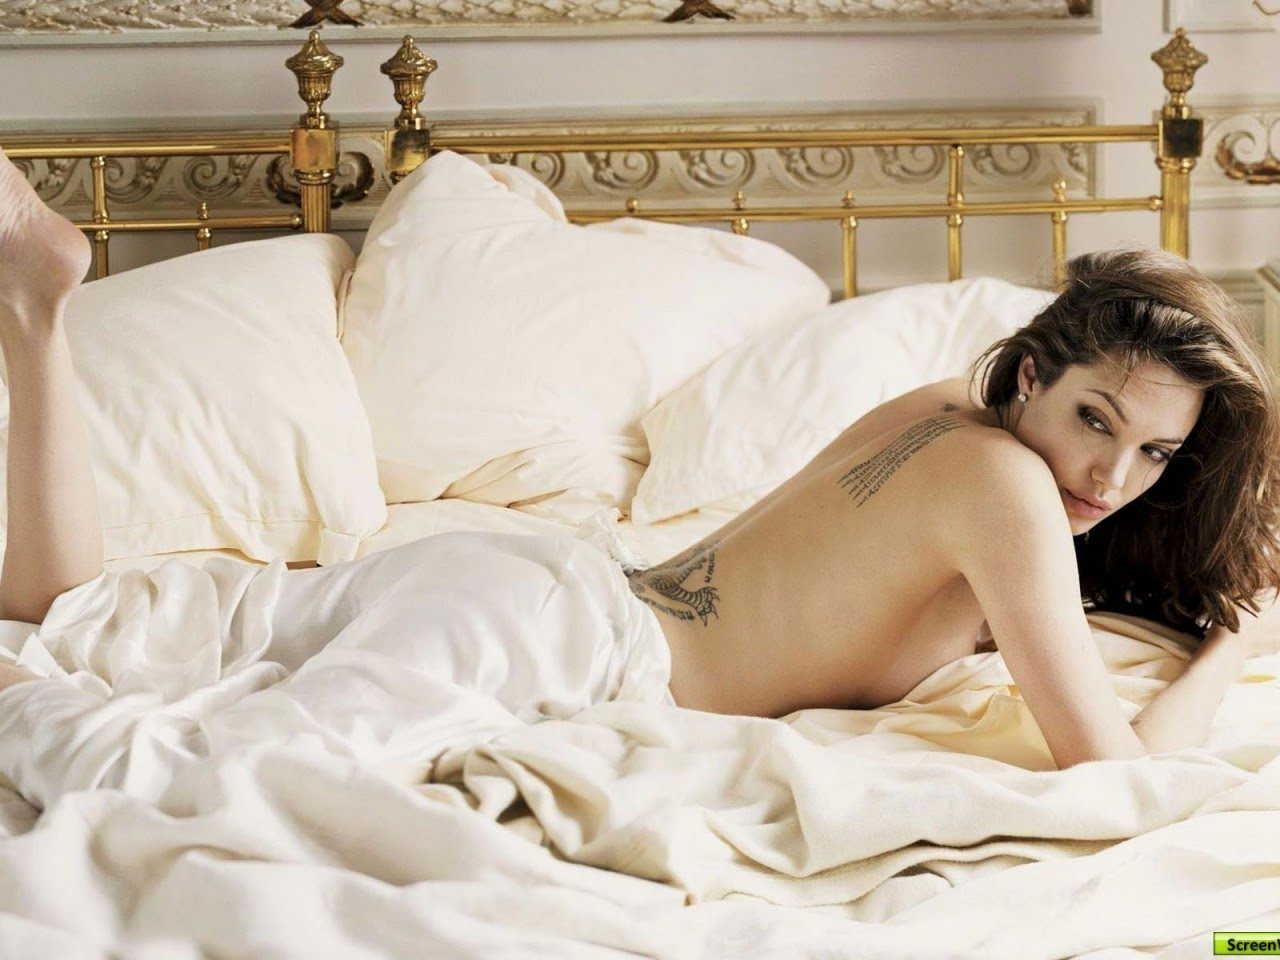 Hottest Hollywood Actresses Who Had Gone Nude For The Movies